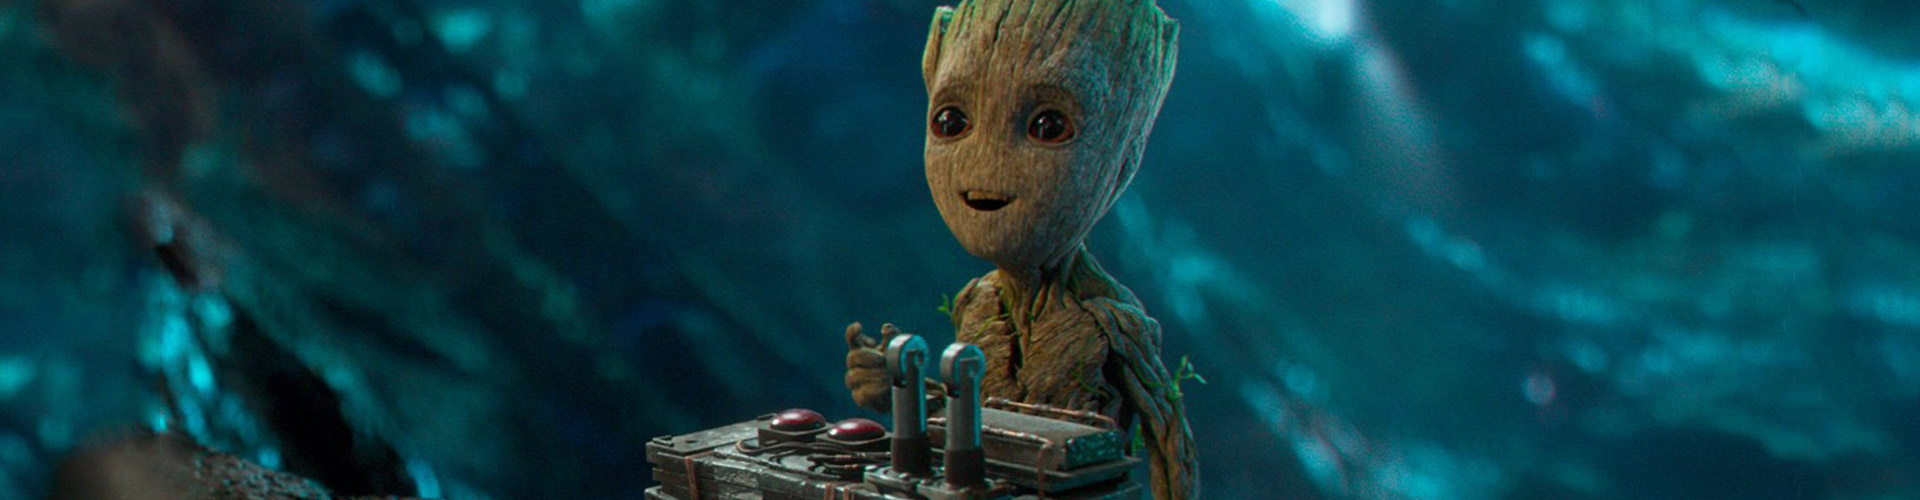 guardians-of-the-galaxy-gifs-header.jpg